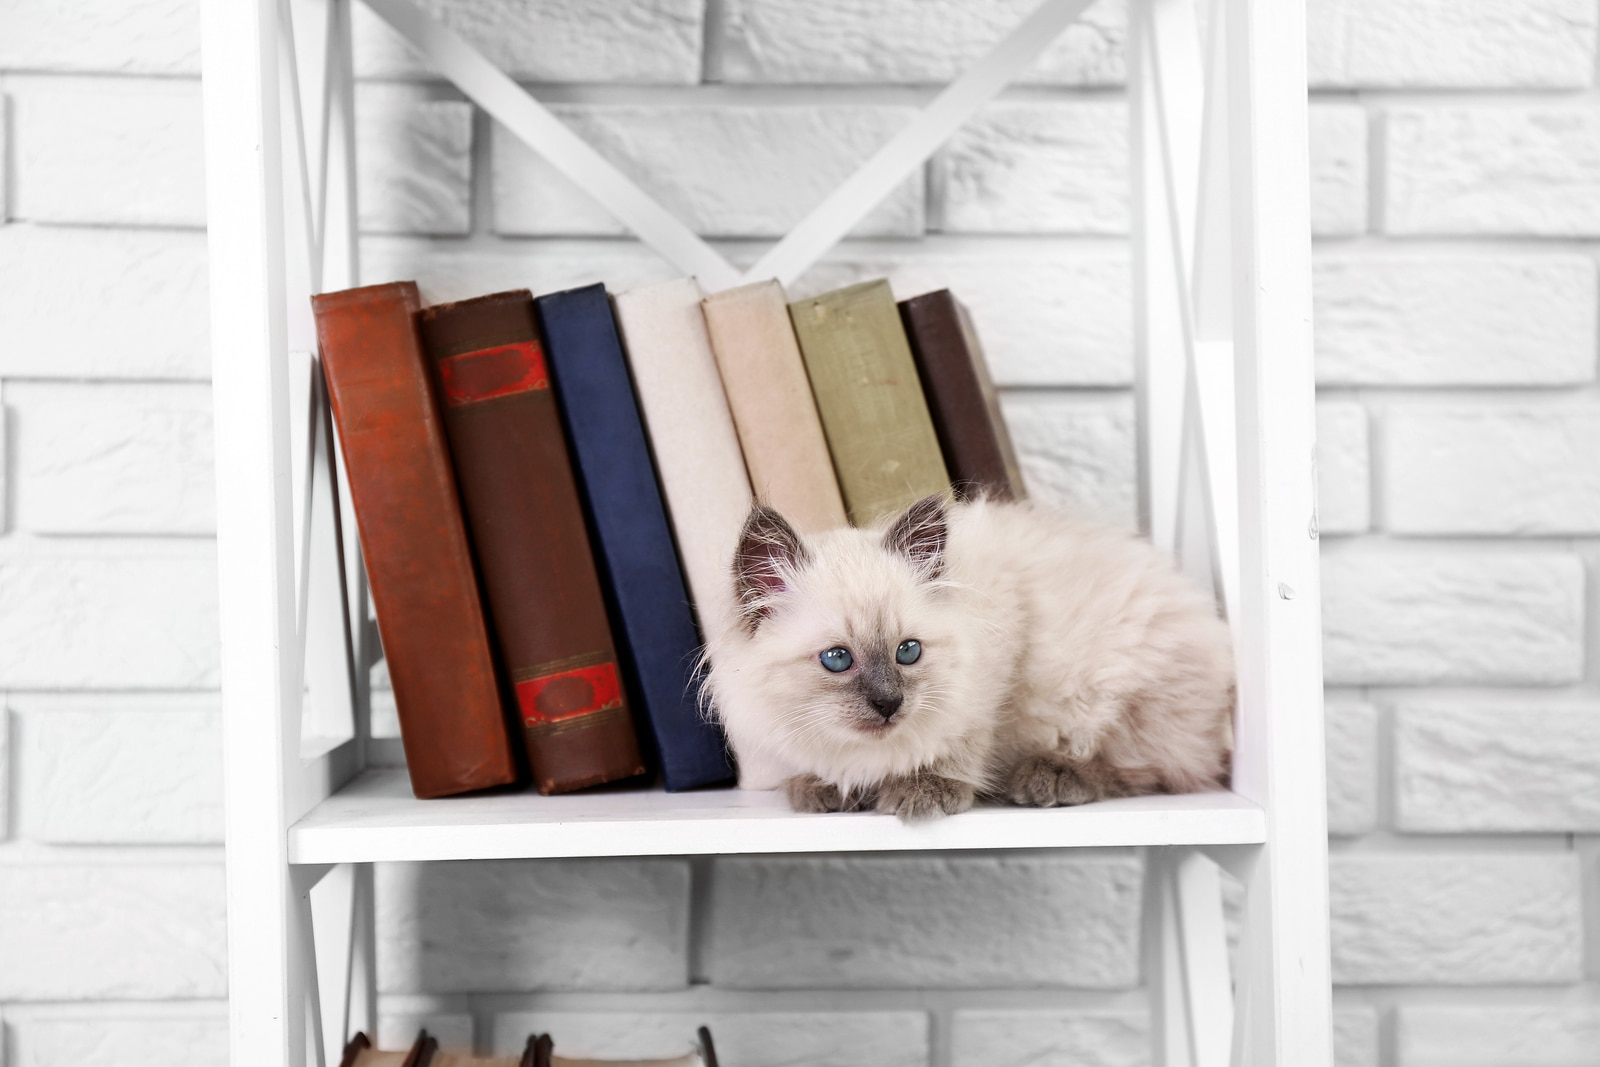 White long-haired kitten on shelf with books on light background